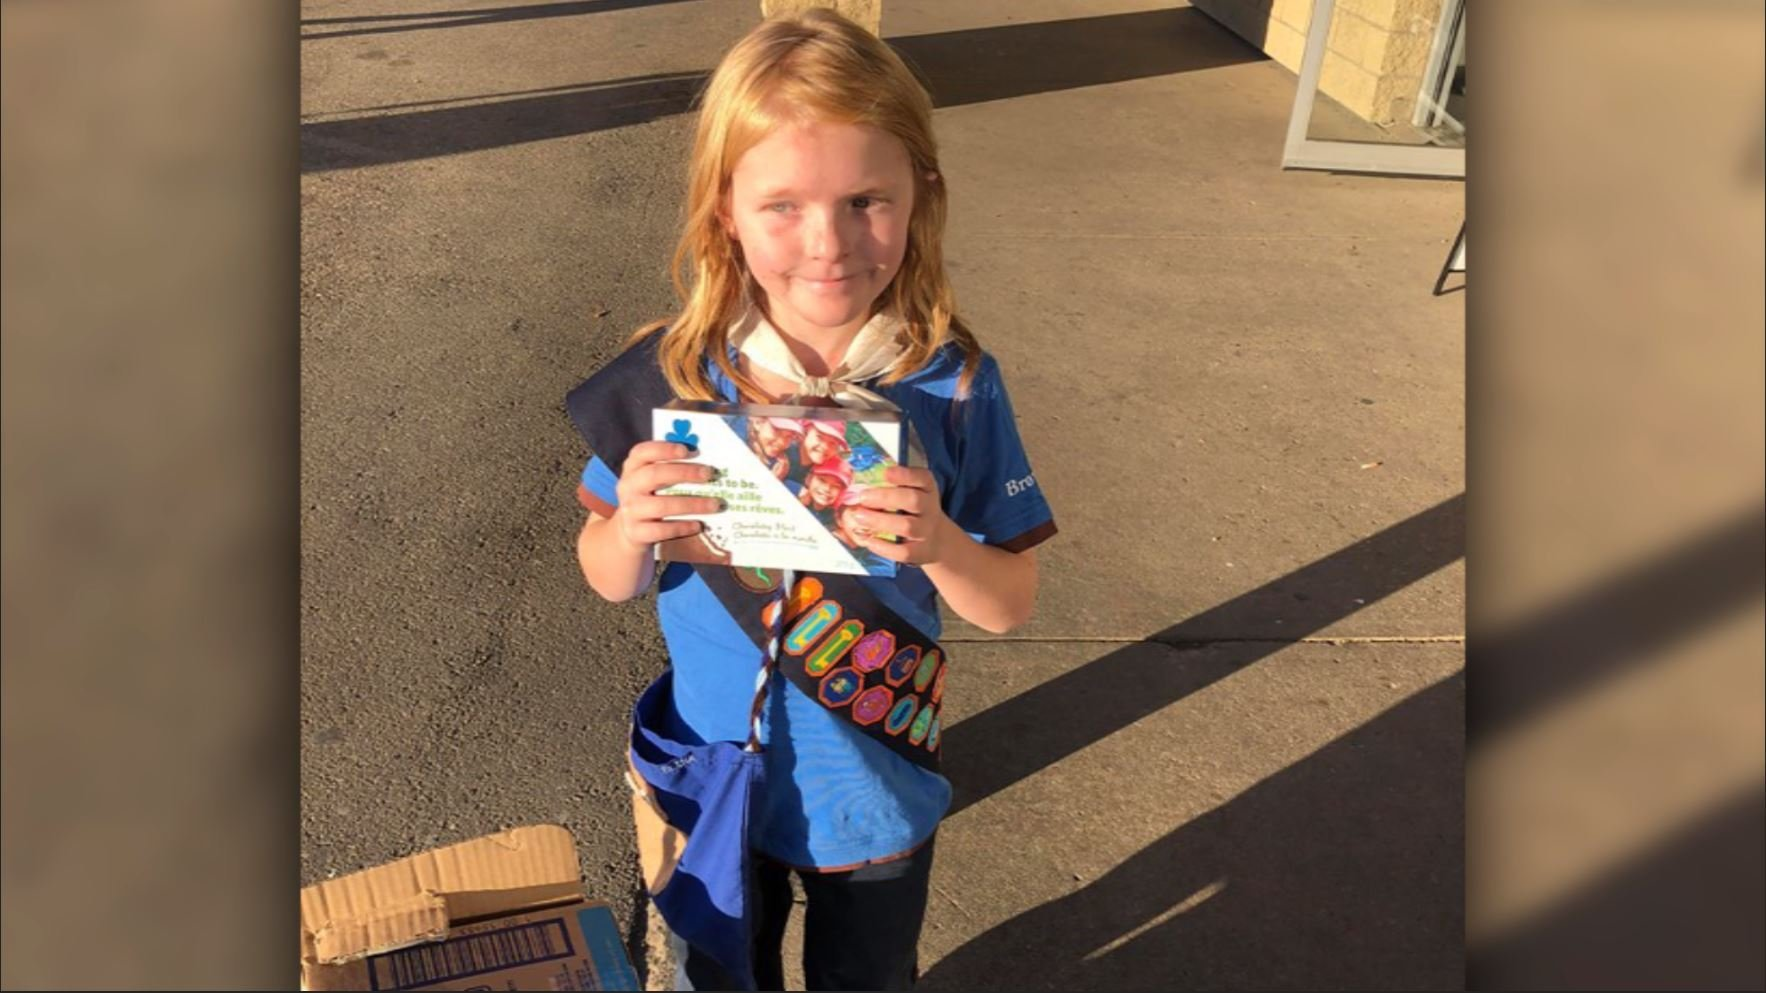 Elina Childs, 9, stood outside marijuana dispensary in Canada and sold all her cookies...Seann Childs 19 Oct 18